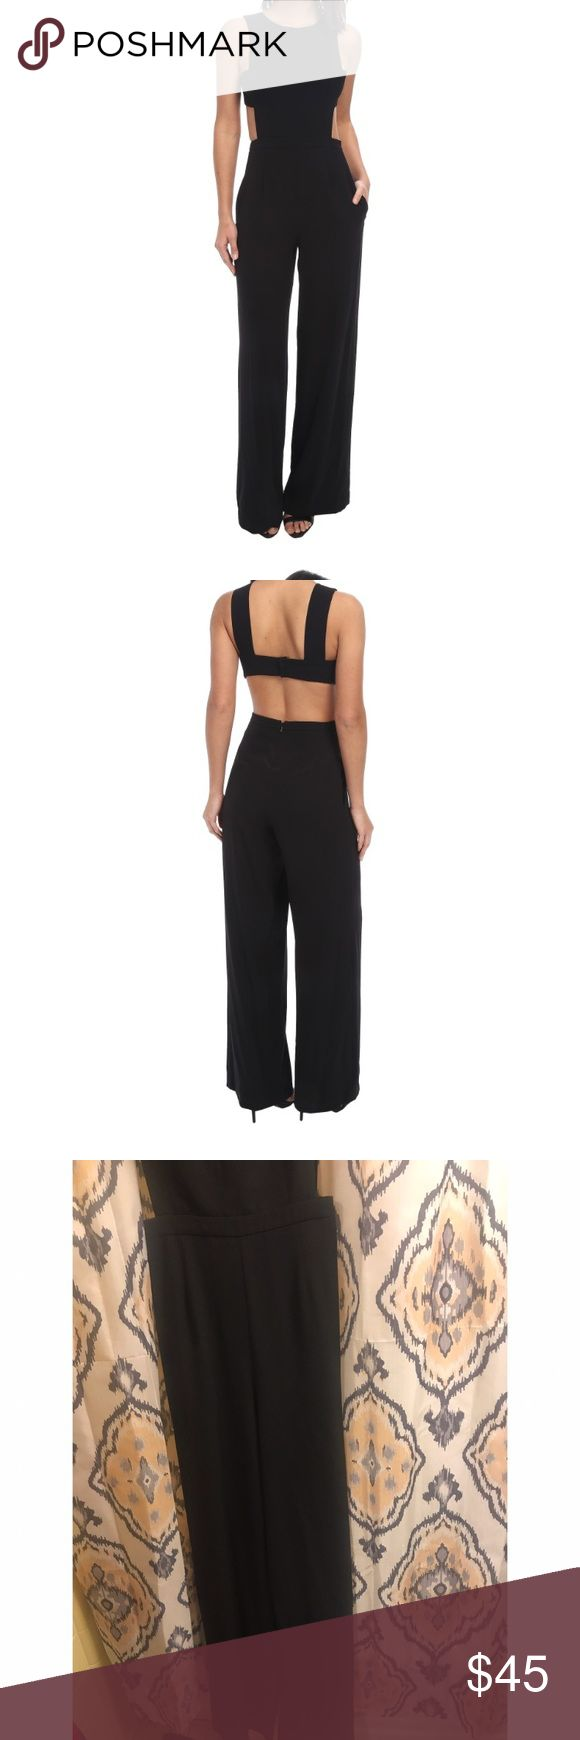 Rossana Cutout Black Jumpsuit Open back with banded detail. Banded waistline, wide leg. BCBGMaxAzria Other